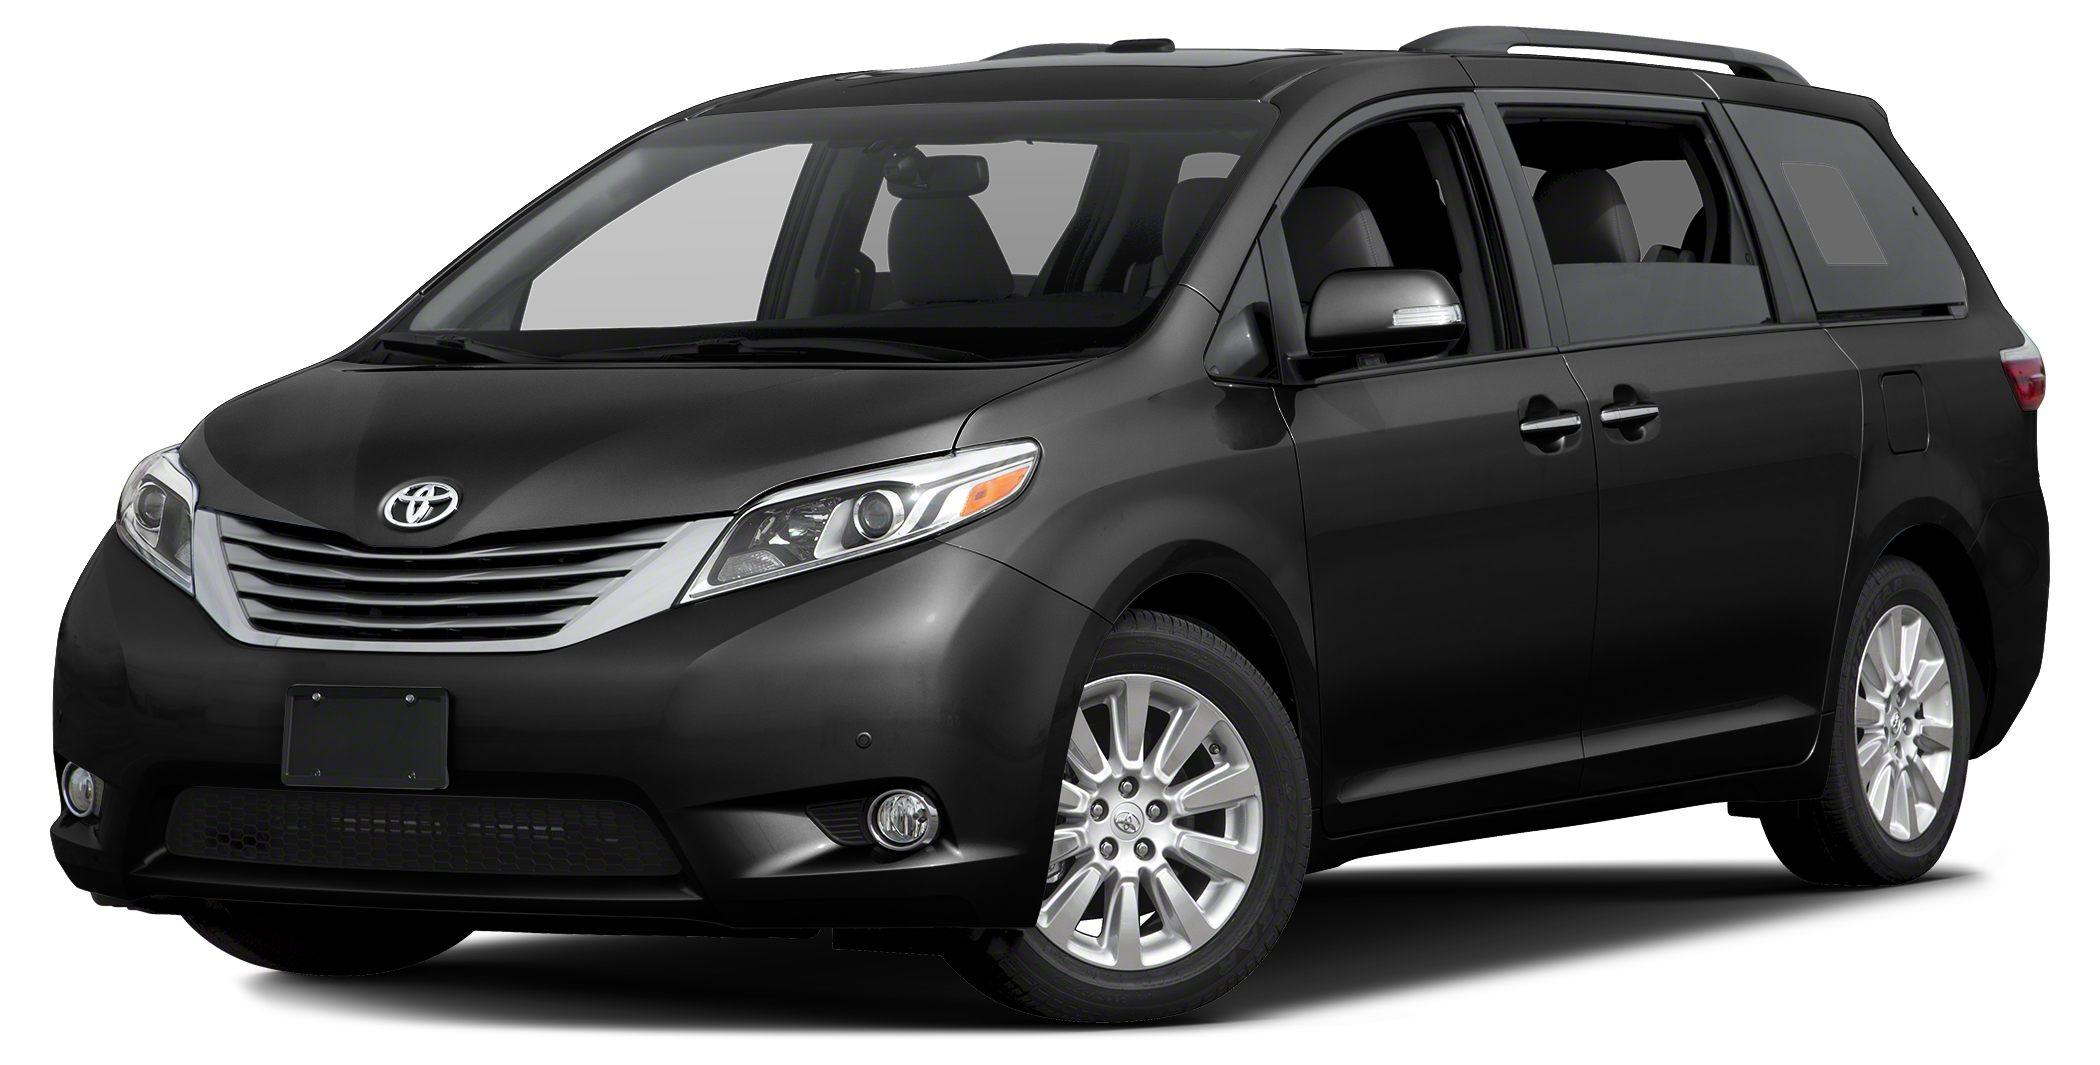 2016 Toyota Sienna XLE 8 Passenger Toyota Certified CARFAX 1-Owner FUEL EFFICIENT 25 MPG Hwy18